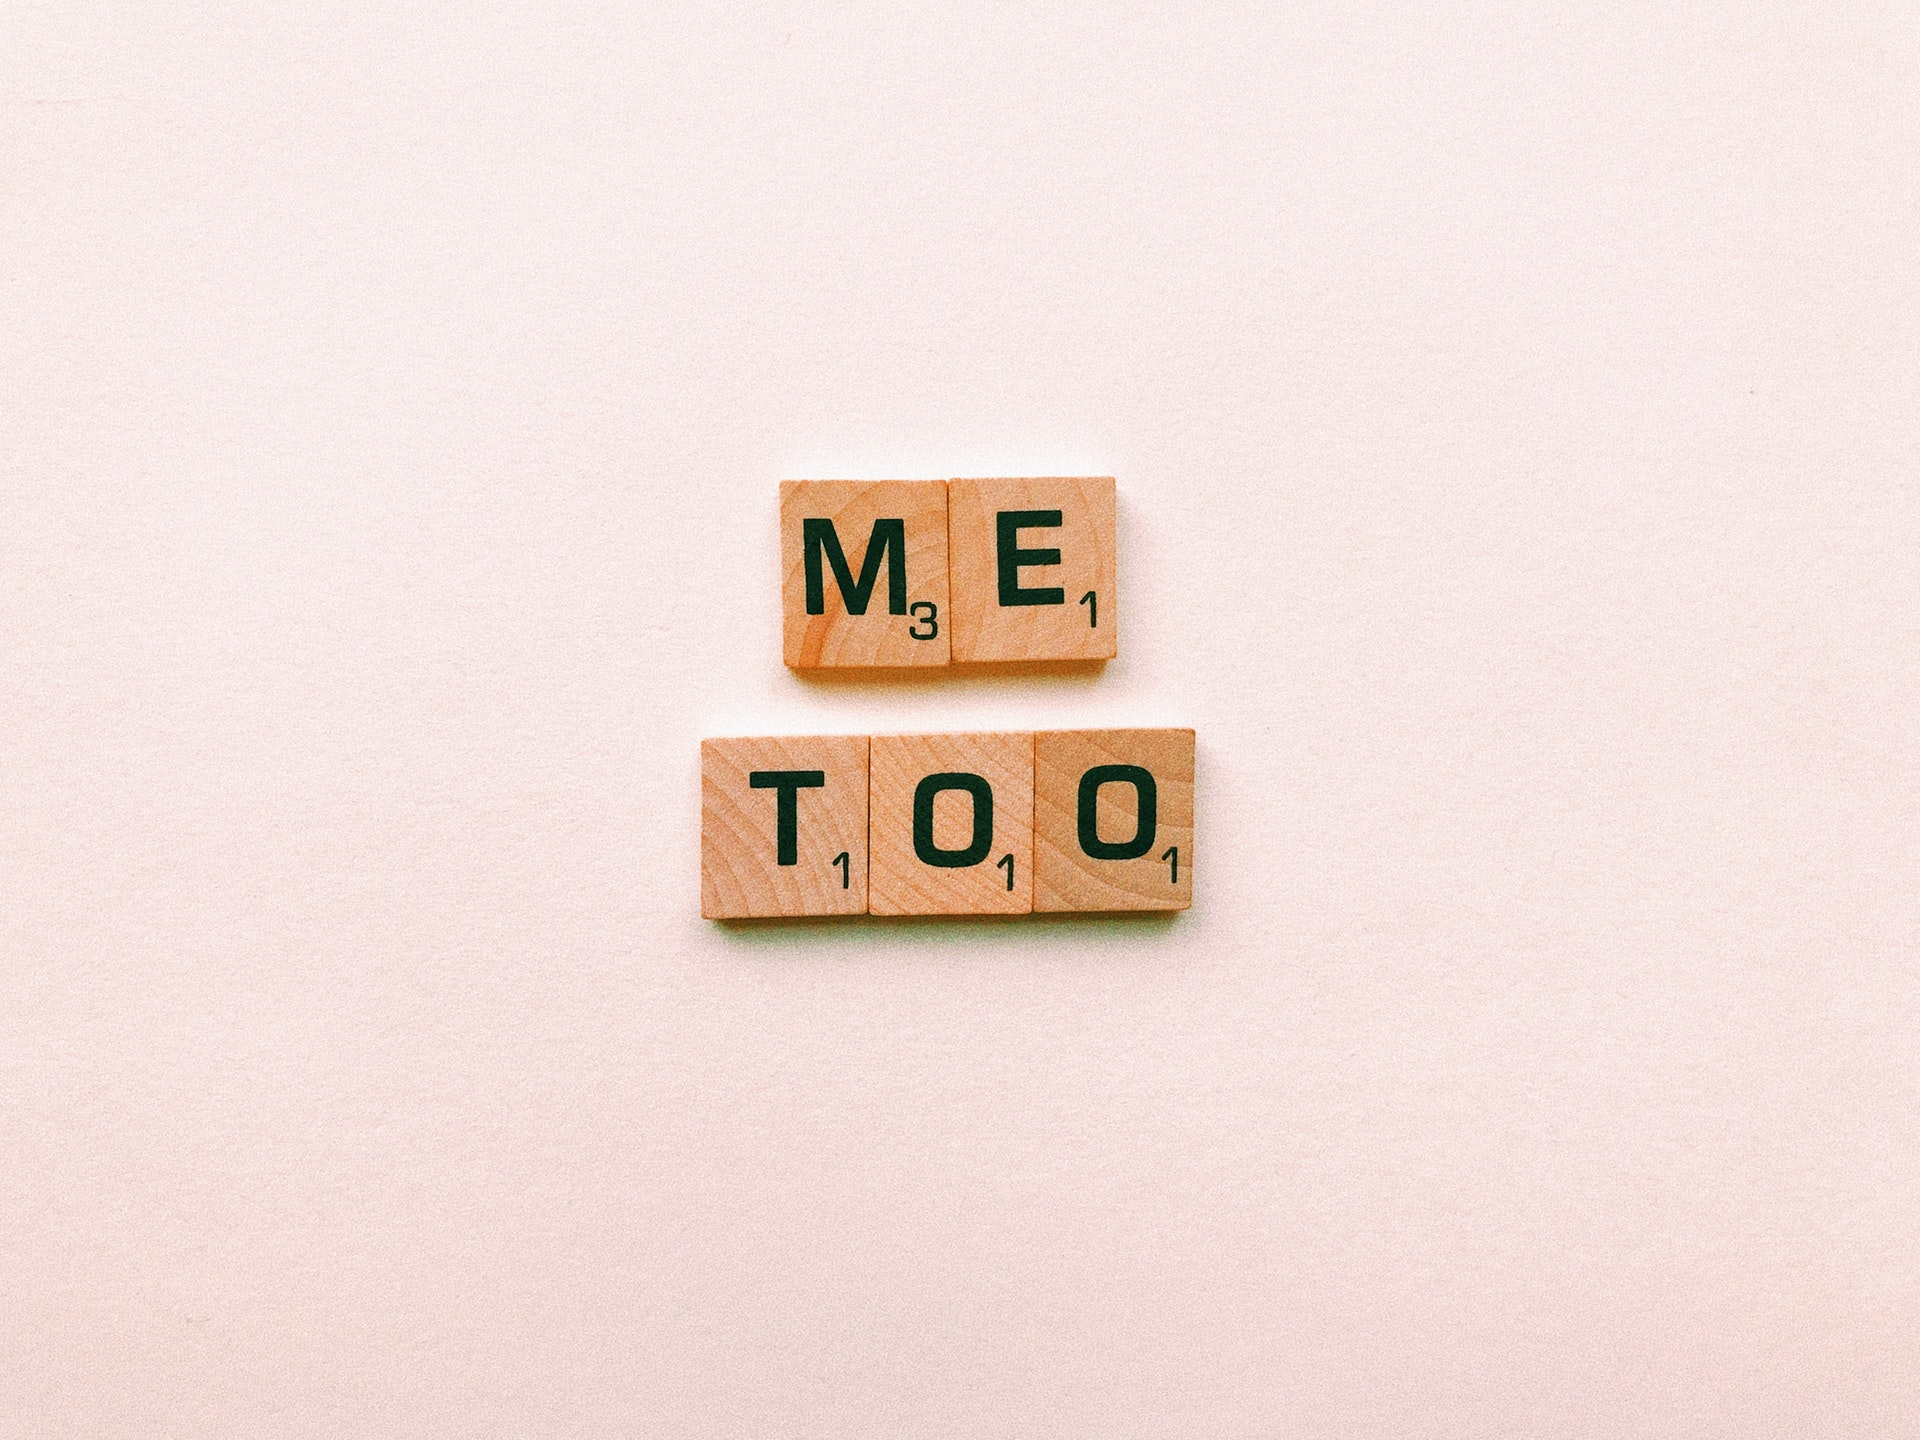 What do we make of the #Metoo movement?